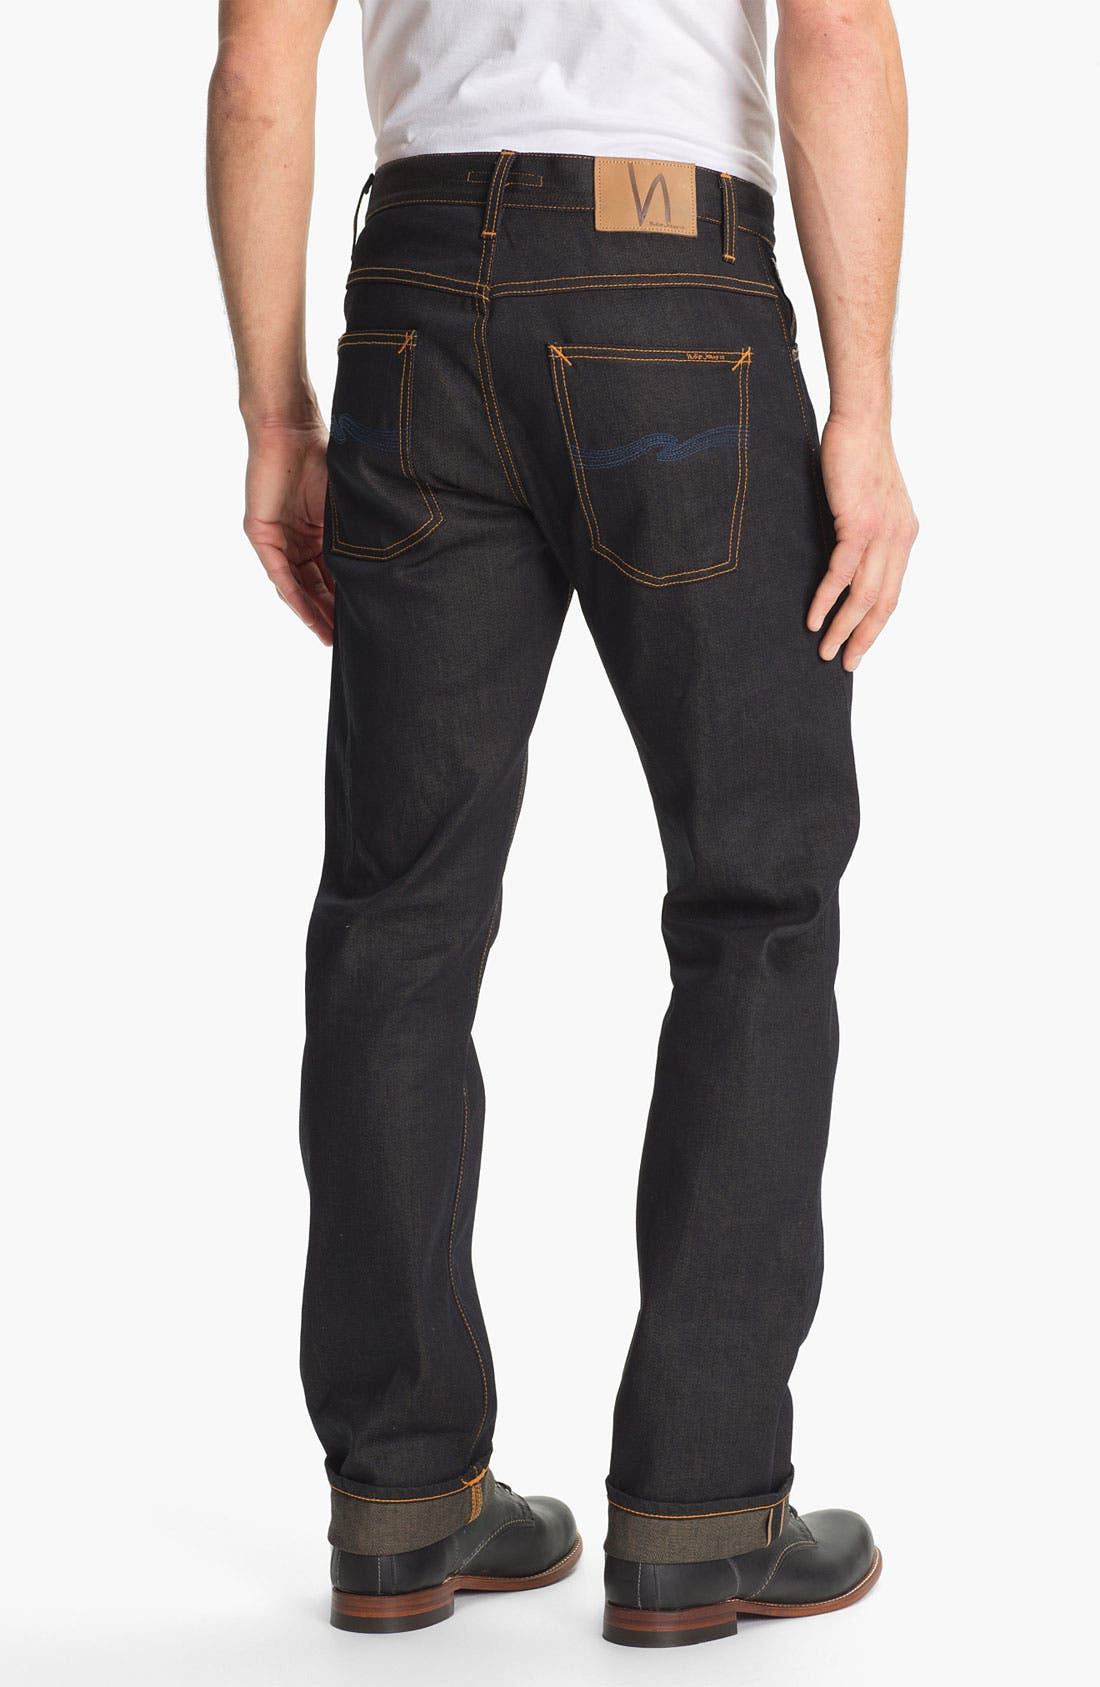 Alternate Image 1 Selected - Nudie 'Average Joe' Straight Leg Jeans (Organic Dry Brown Selvedge)